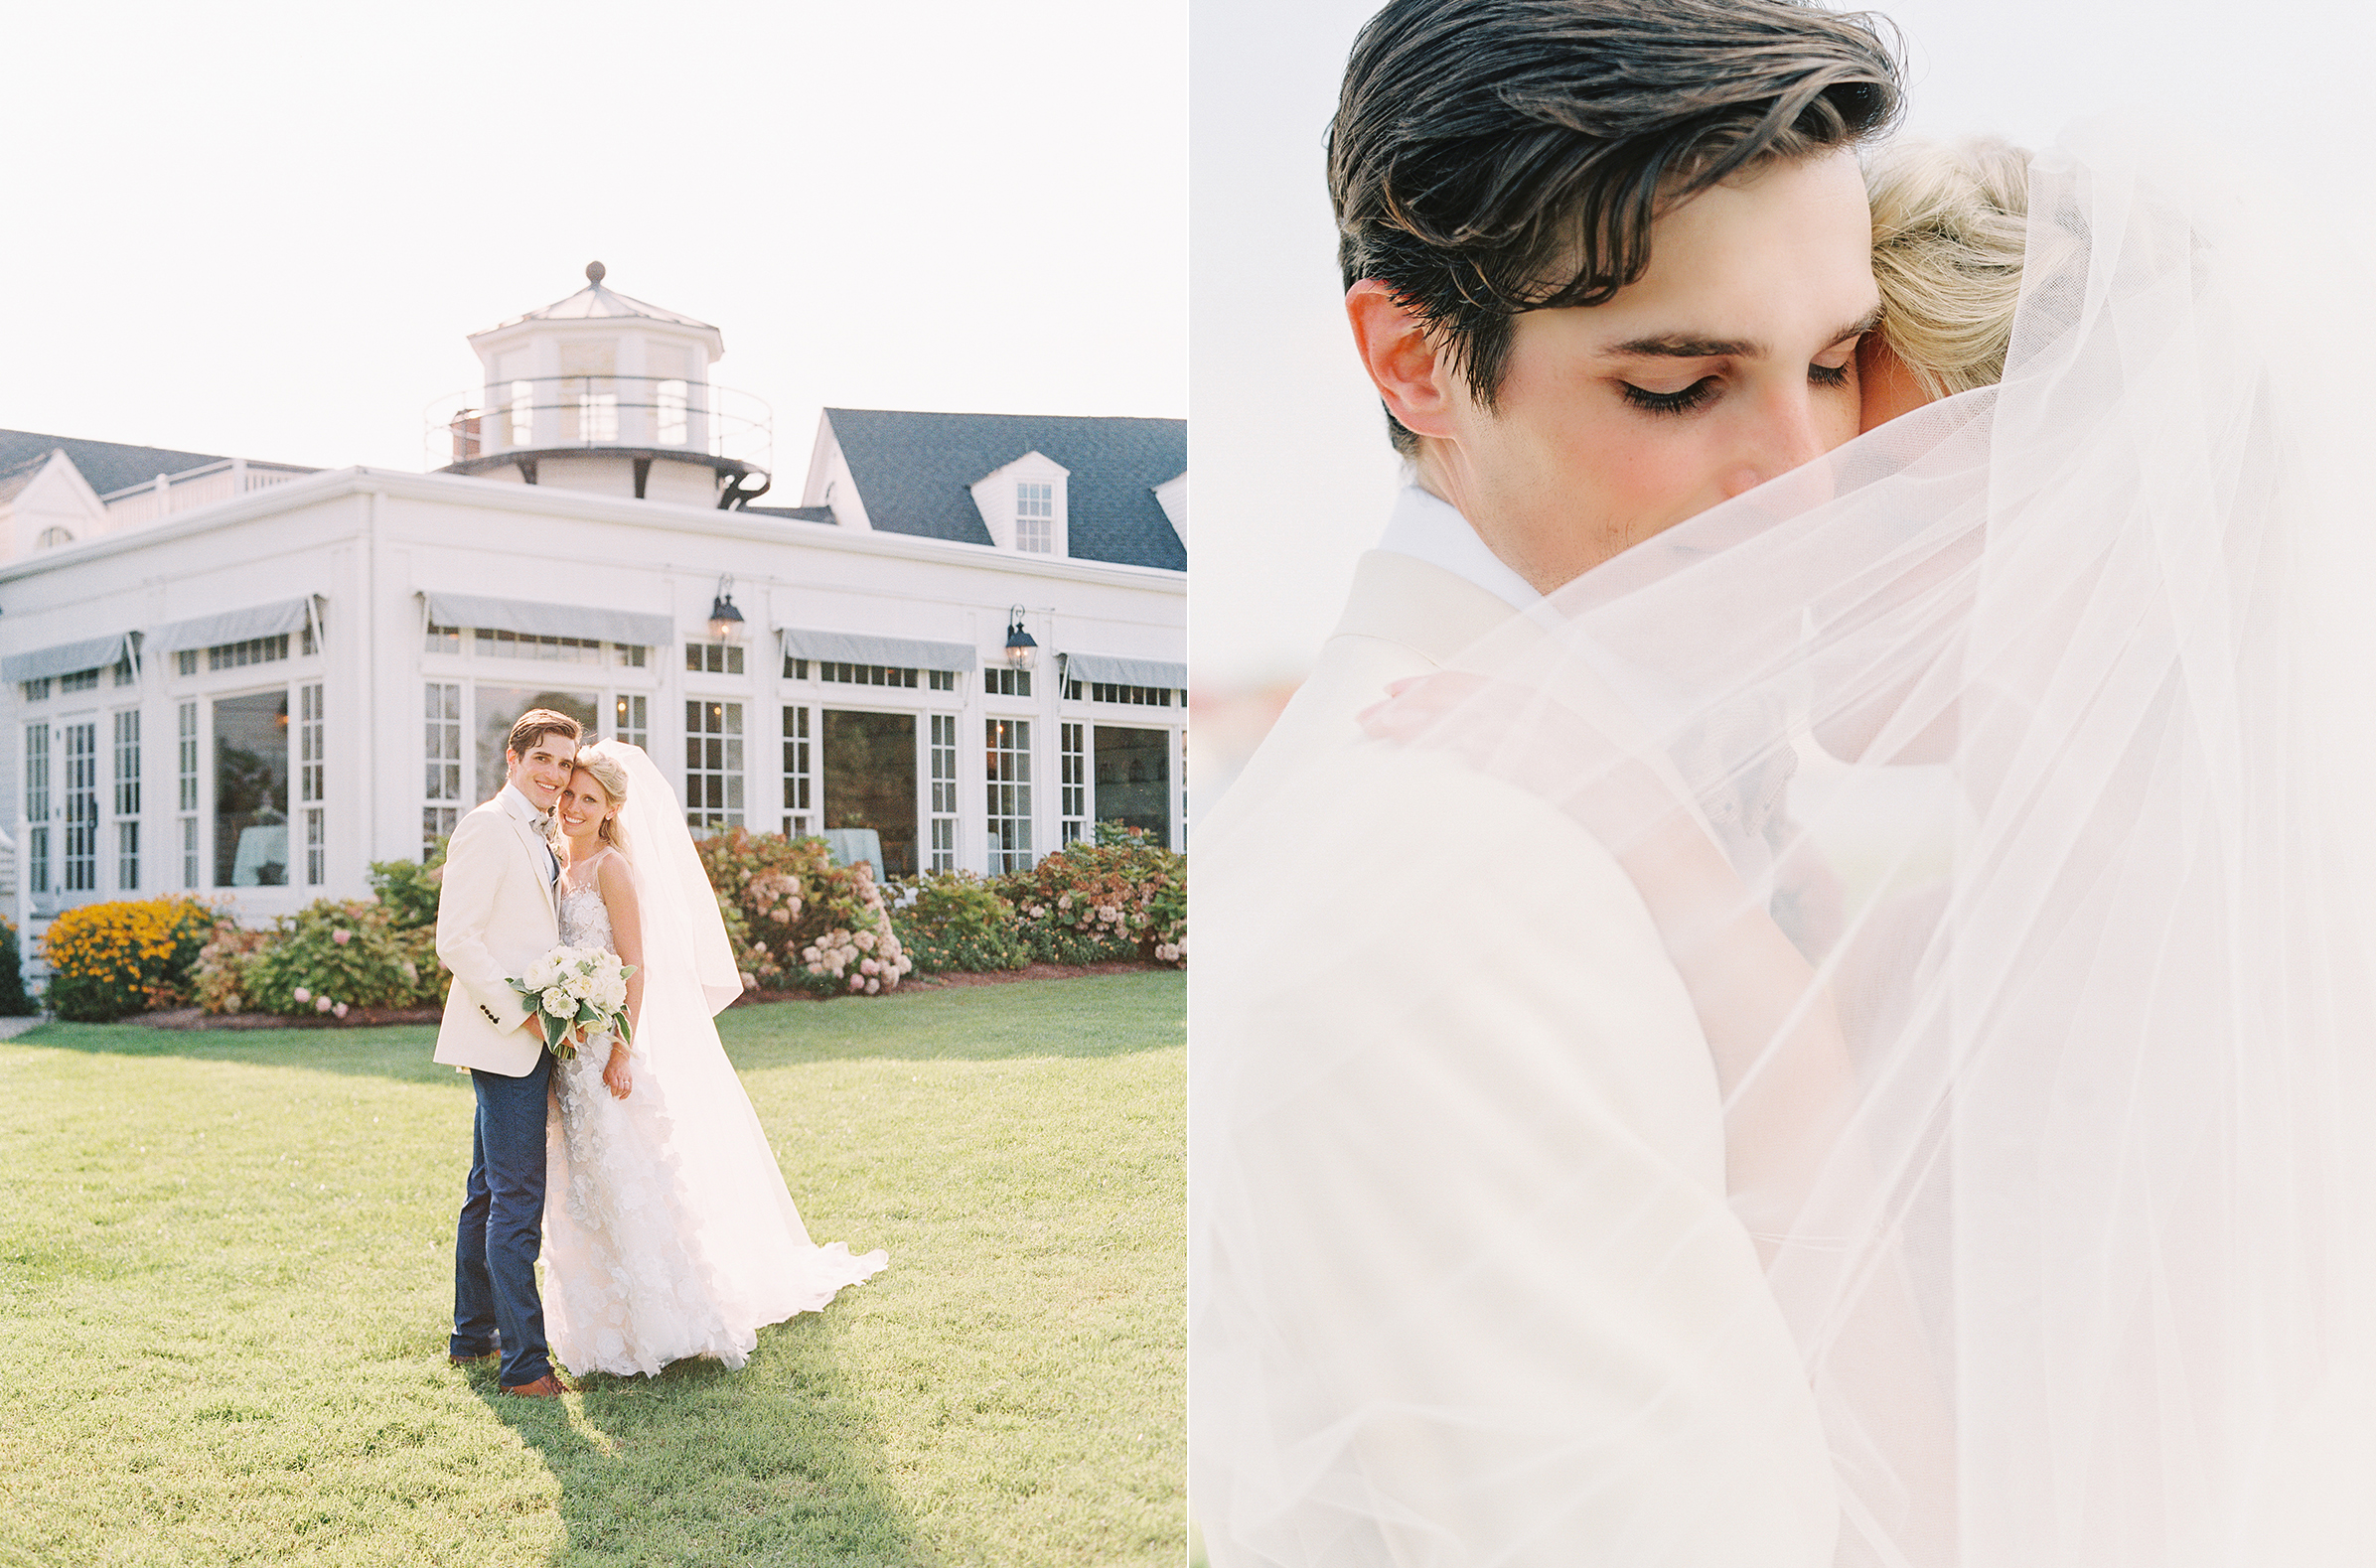 katie stoops photography-inn at perry cabin wedding38.jpg